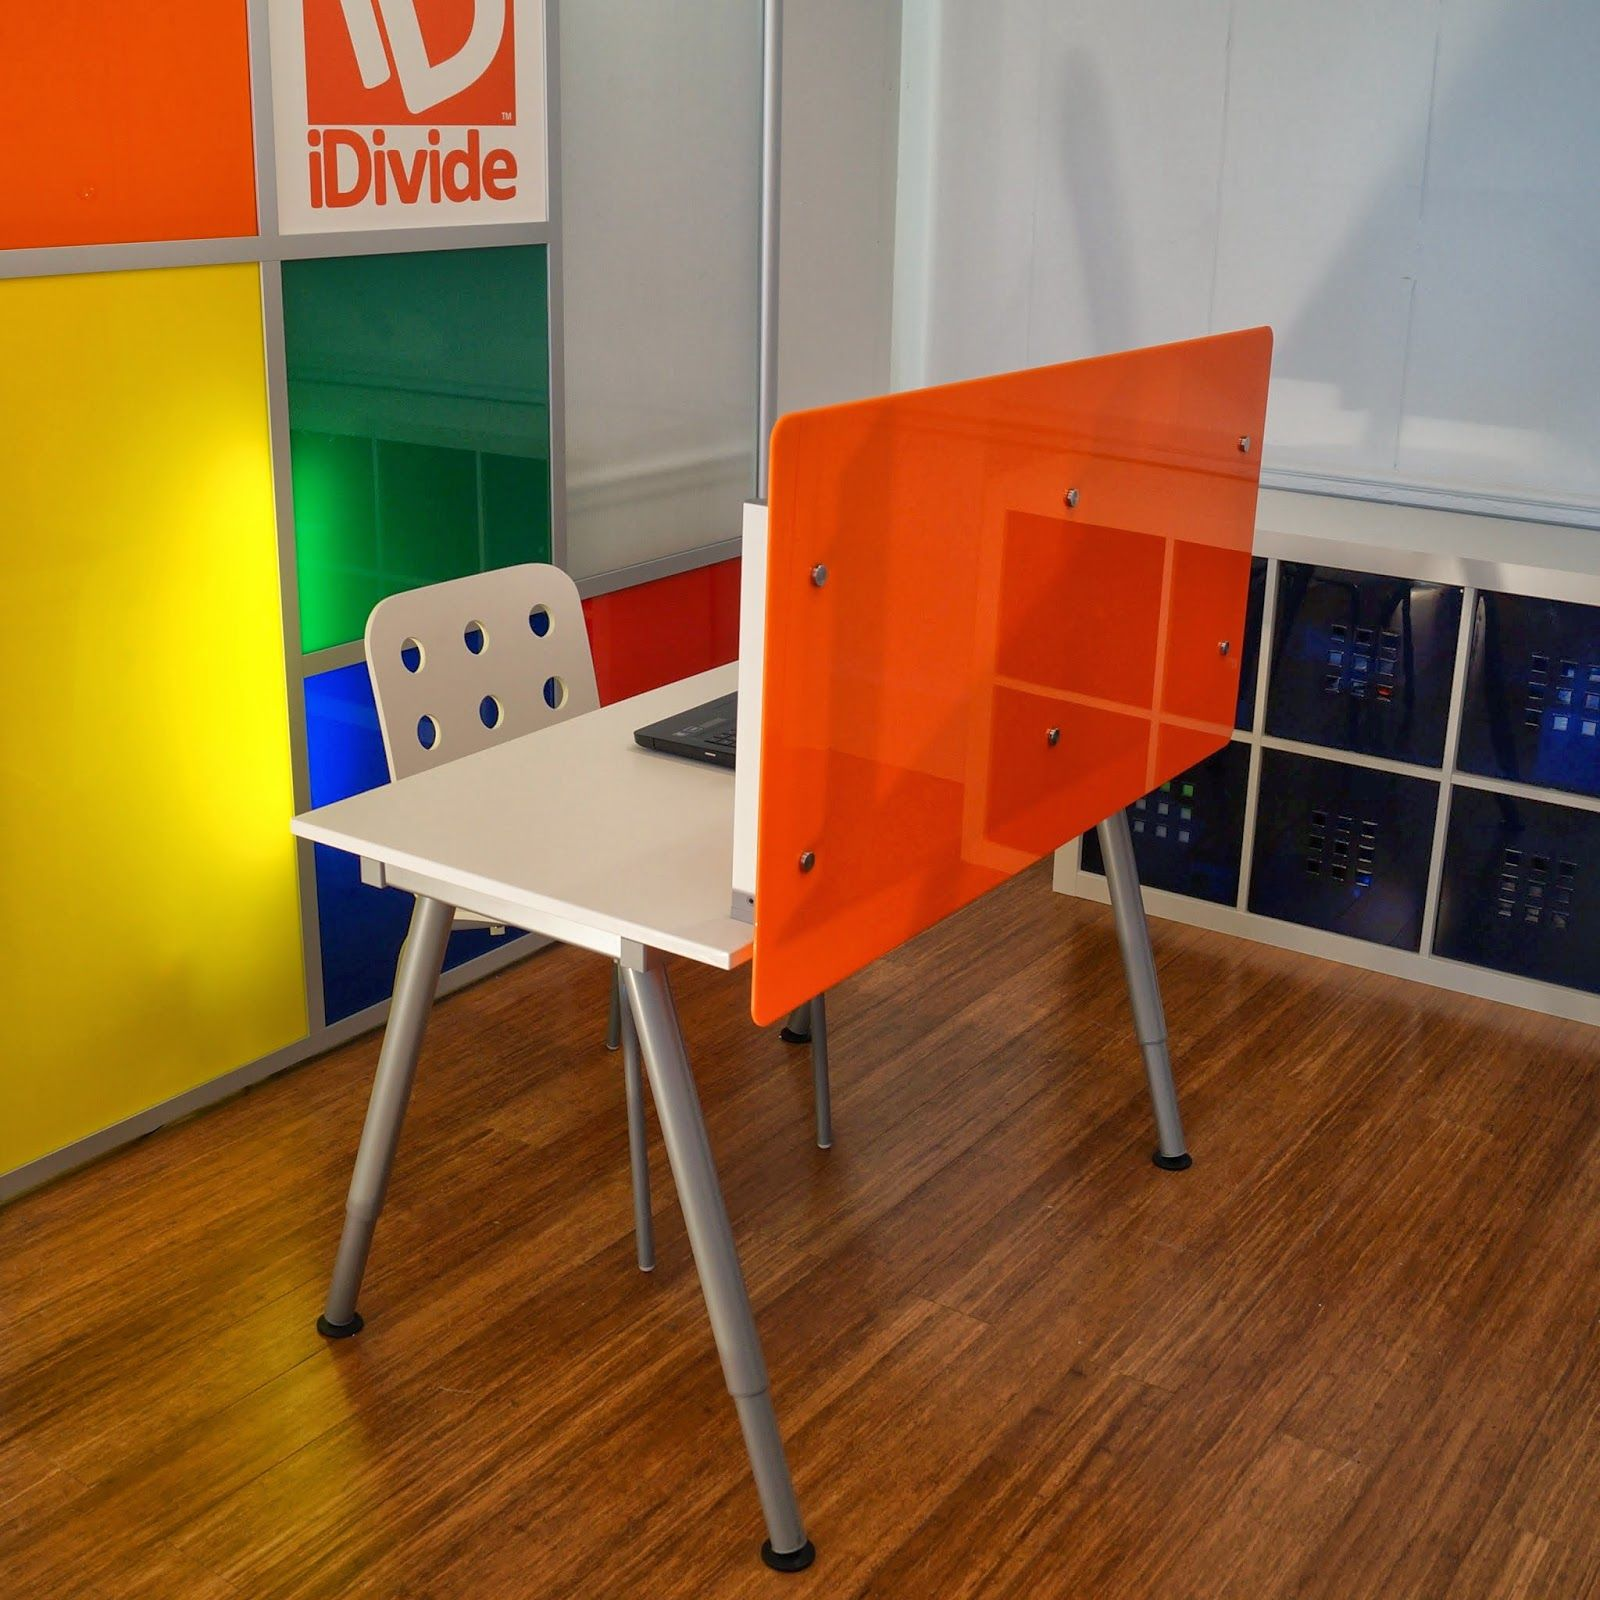 Deskdivide new product from idivide desk dividers